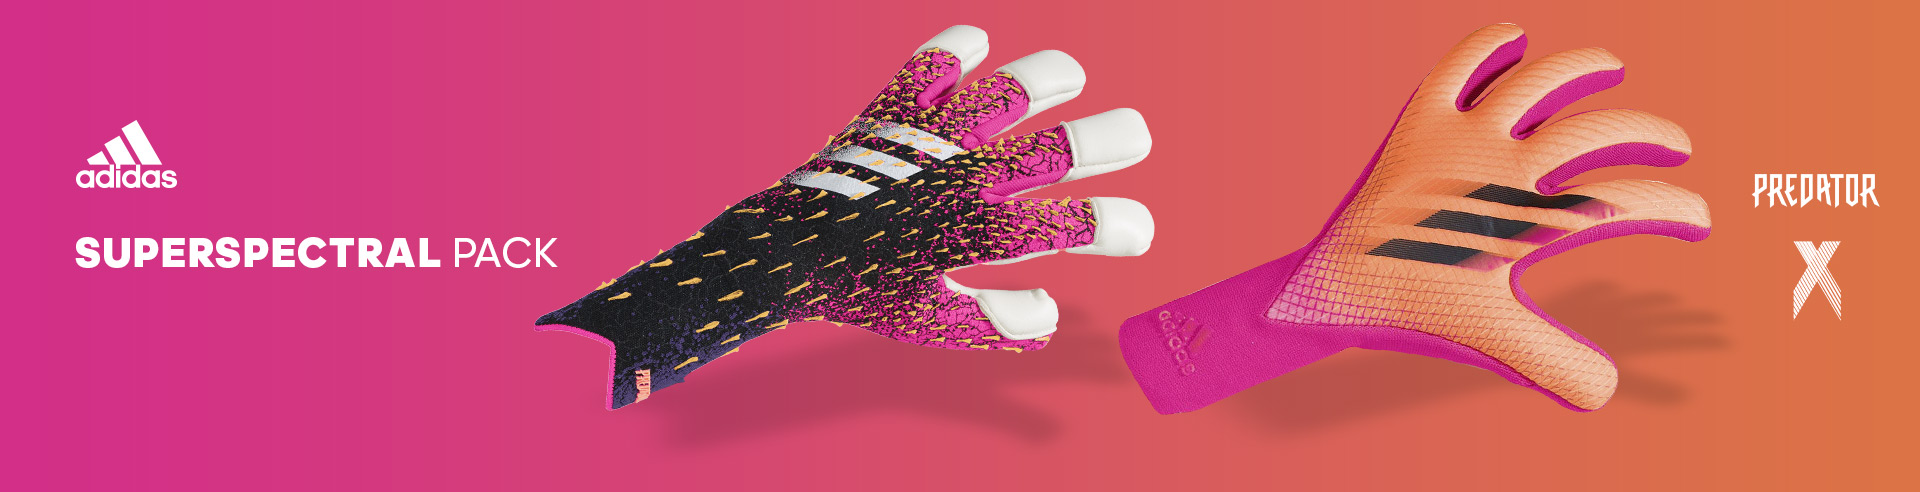 ADIDAS SUPERSPECTRAL PACK GUANTES ABRIL 2021